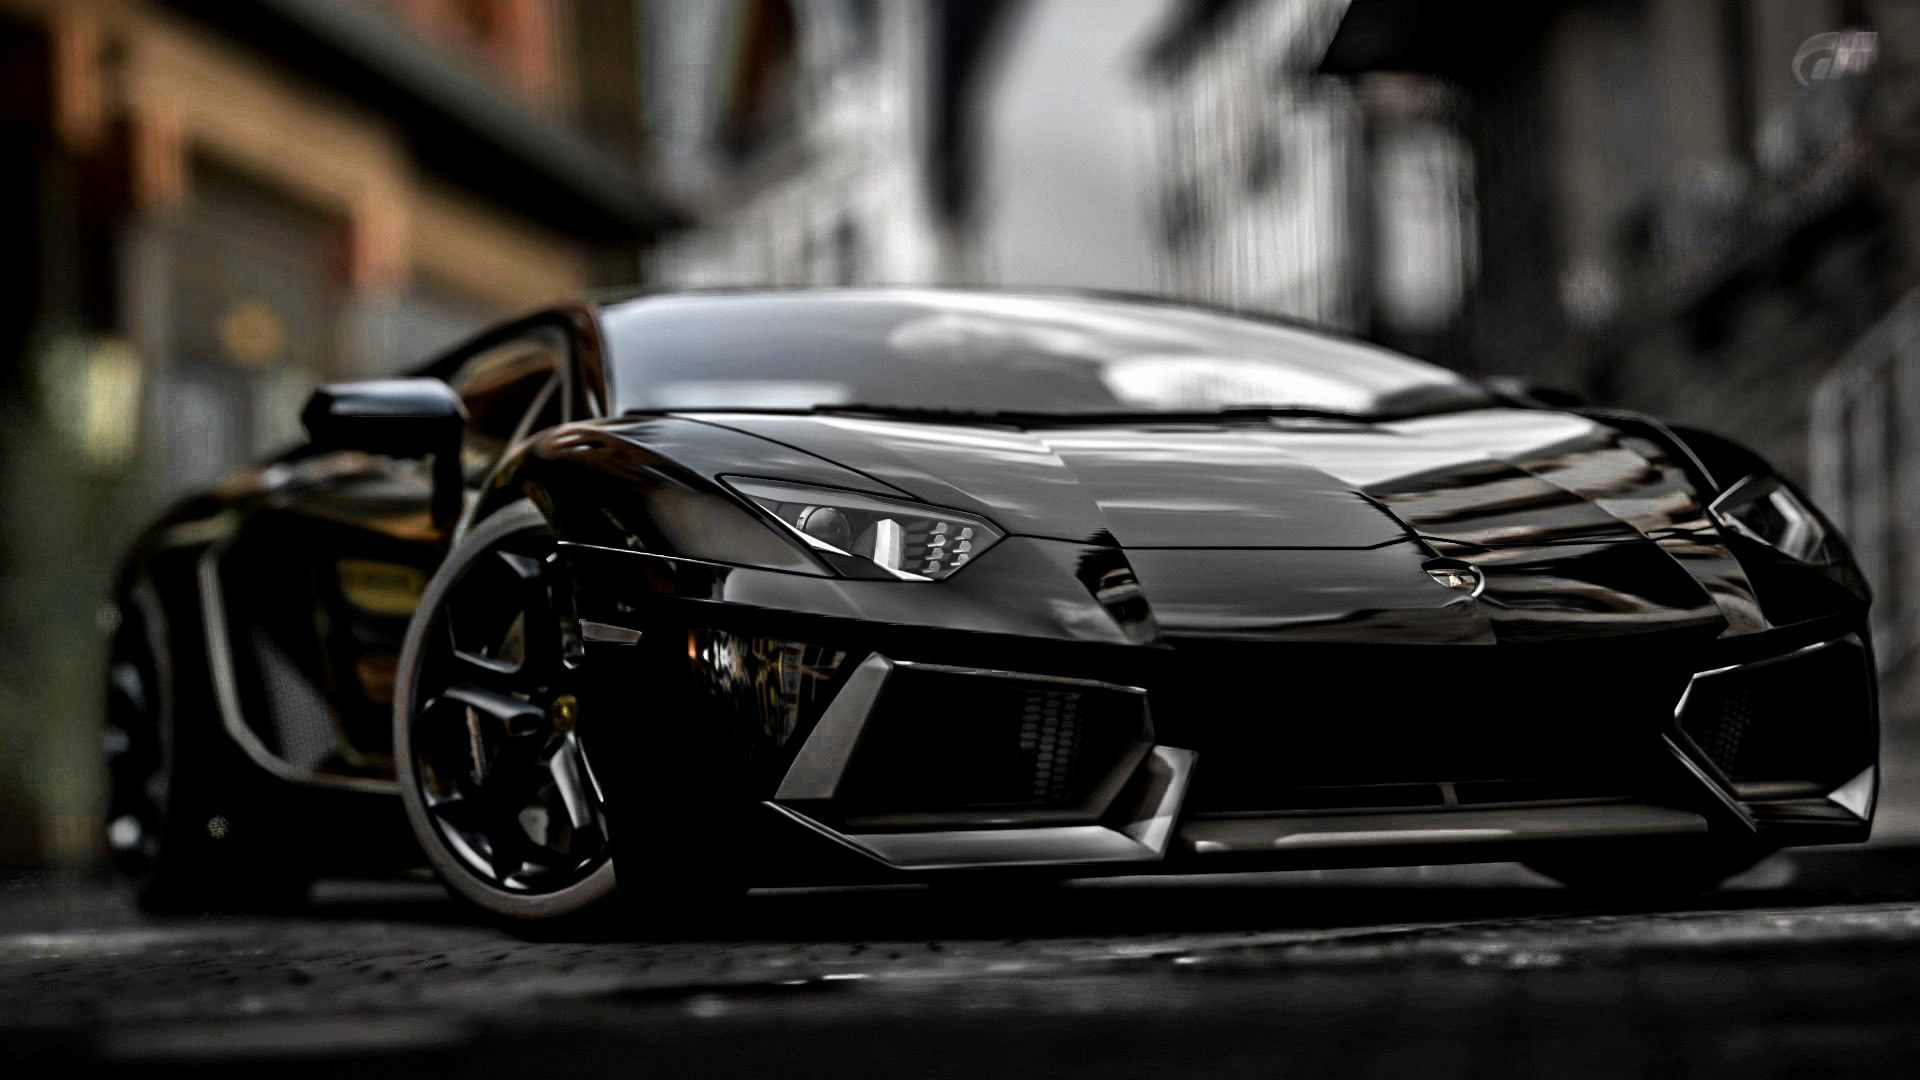 Lamborghini Cars Wallpaper 78 Images